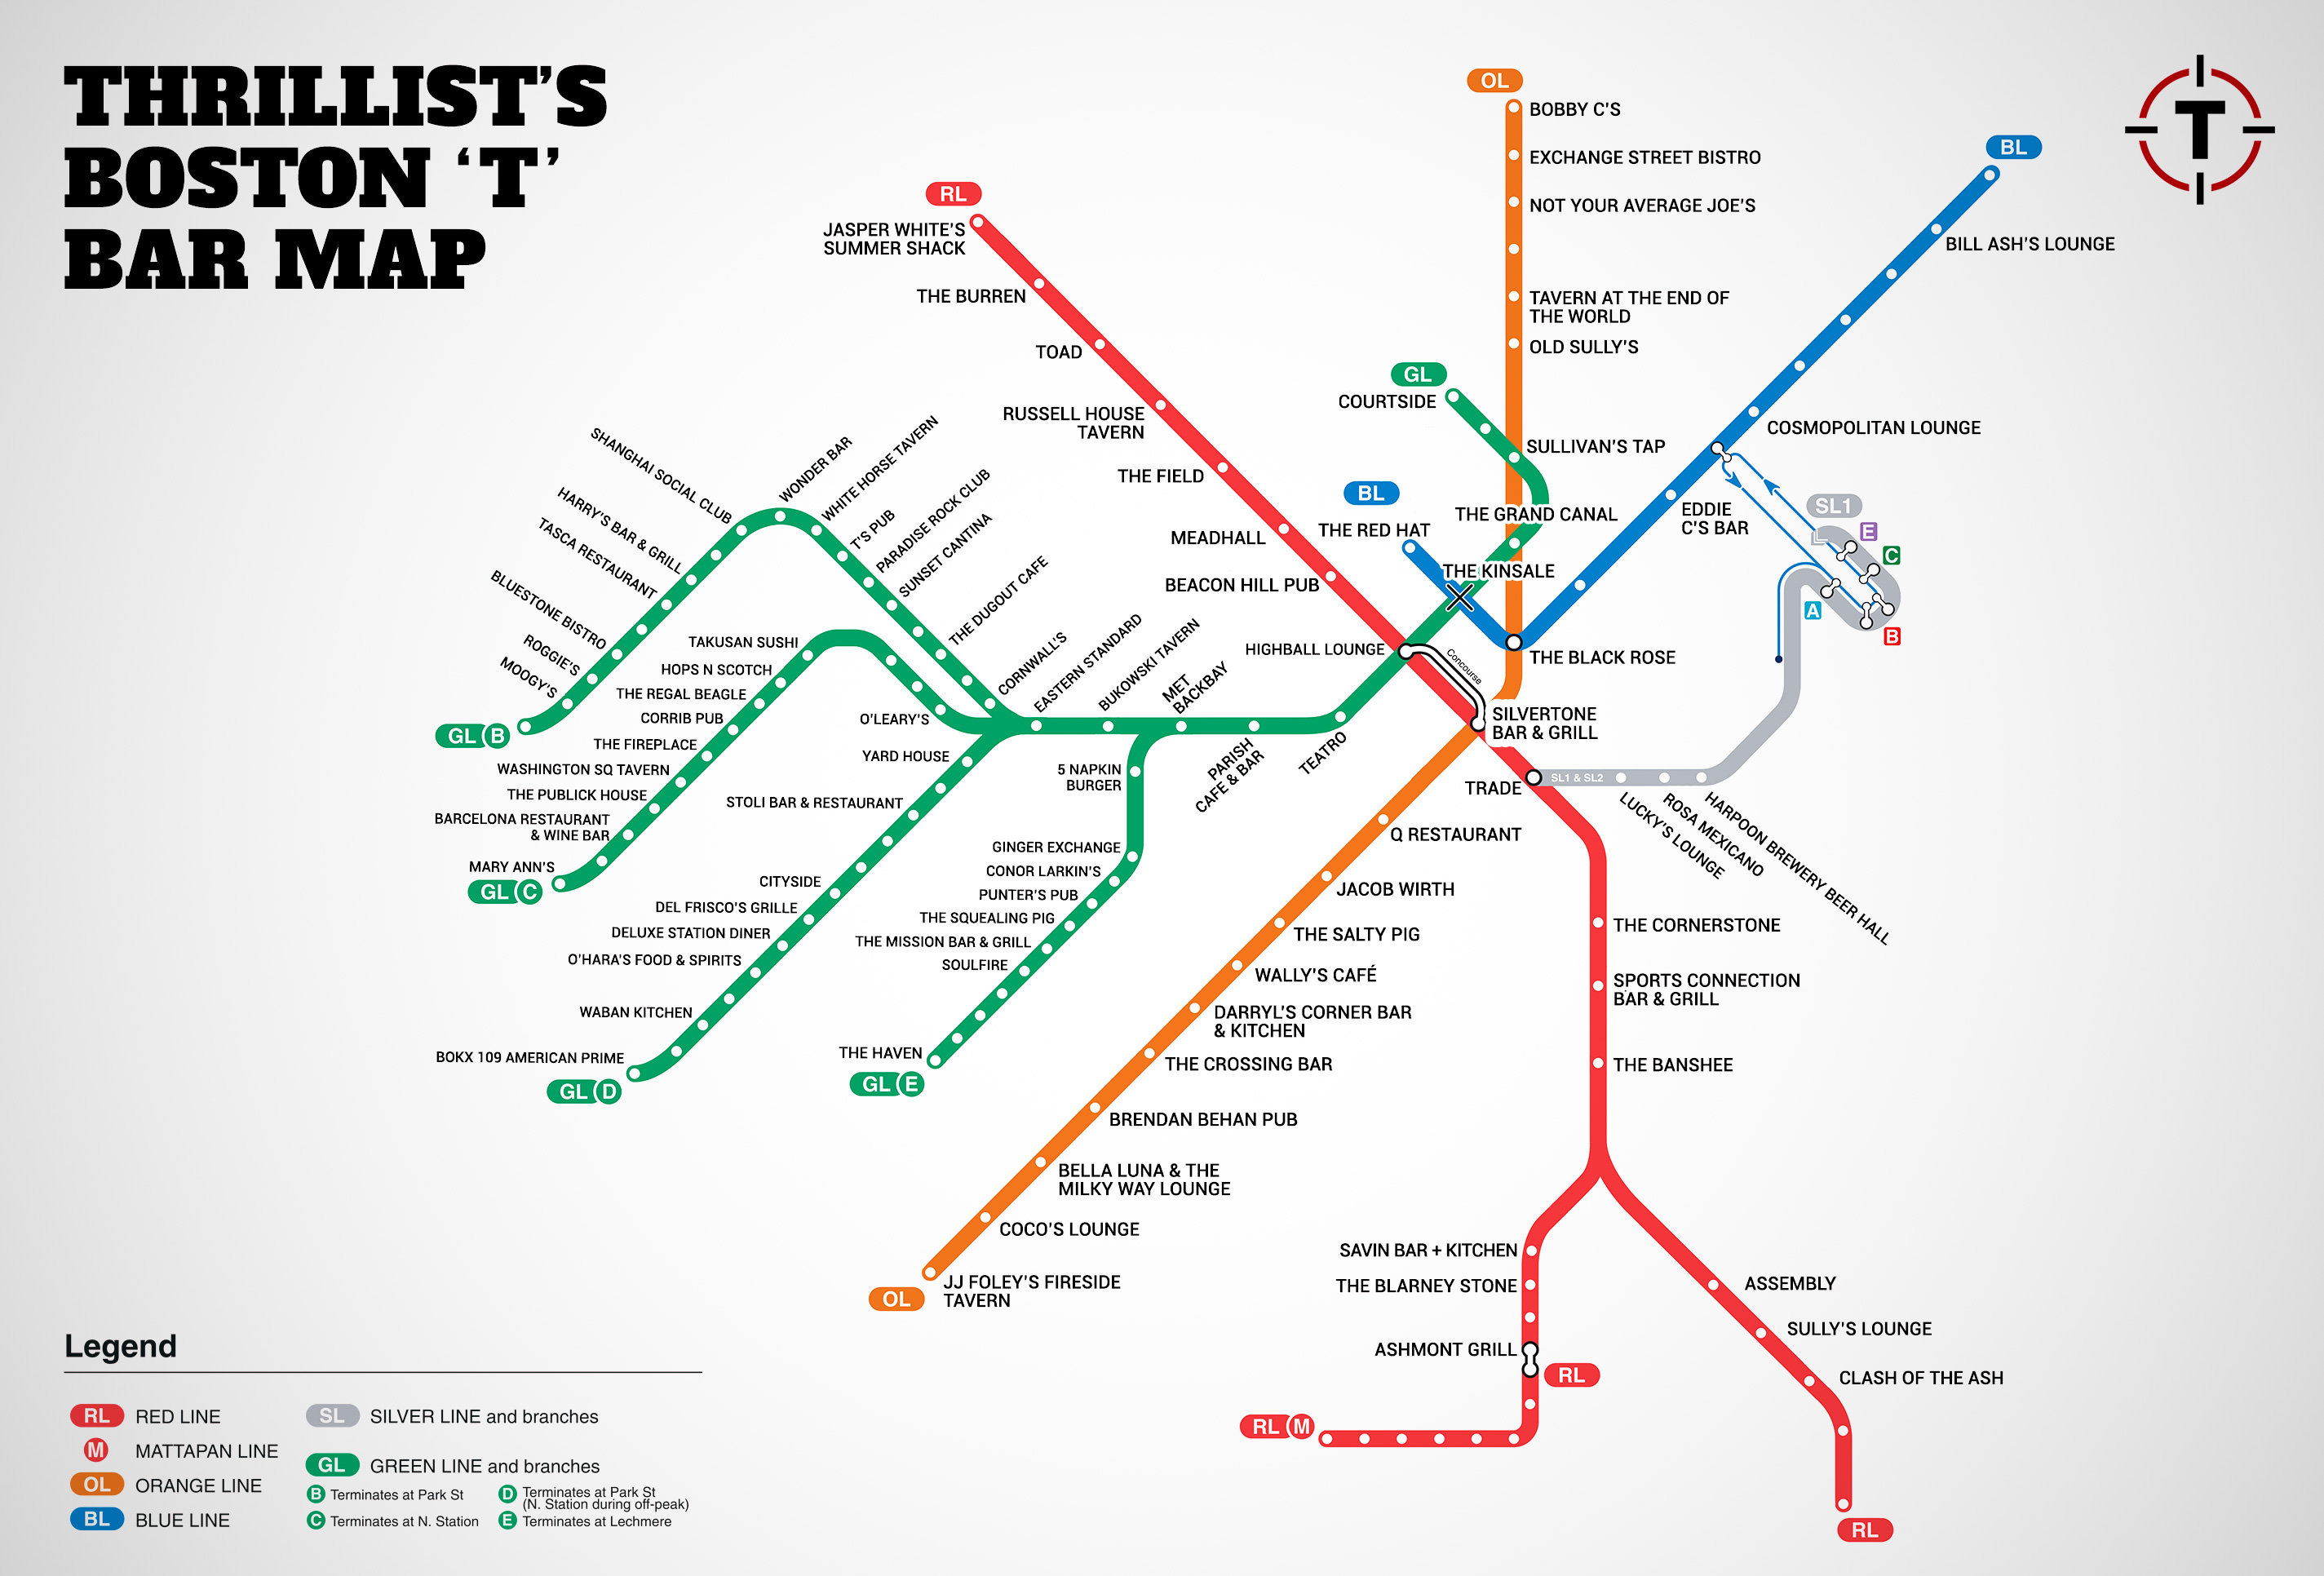 t train boston map Boston S First Map Of Bars Near The T Mbta Bar Map Thrillist t train boston map